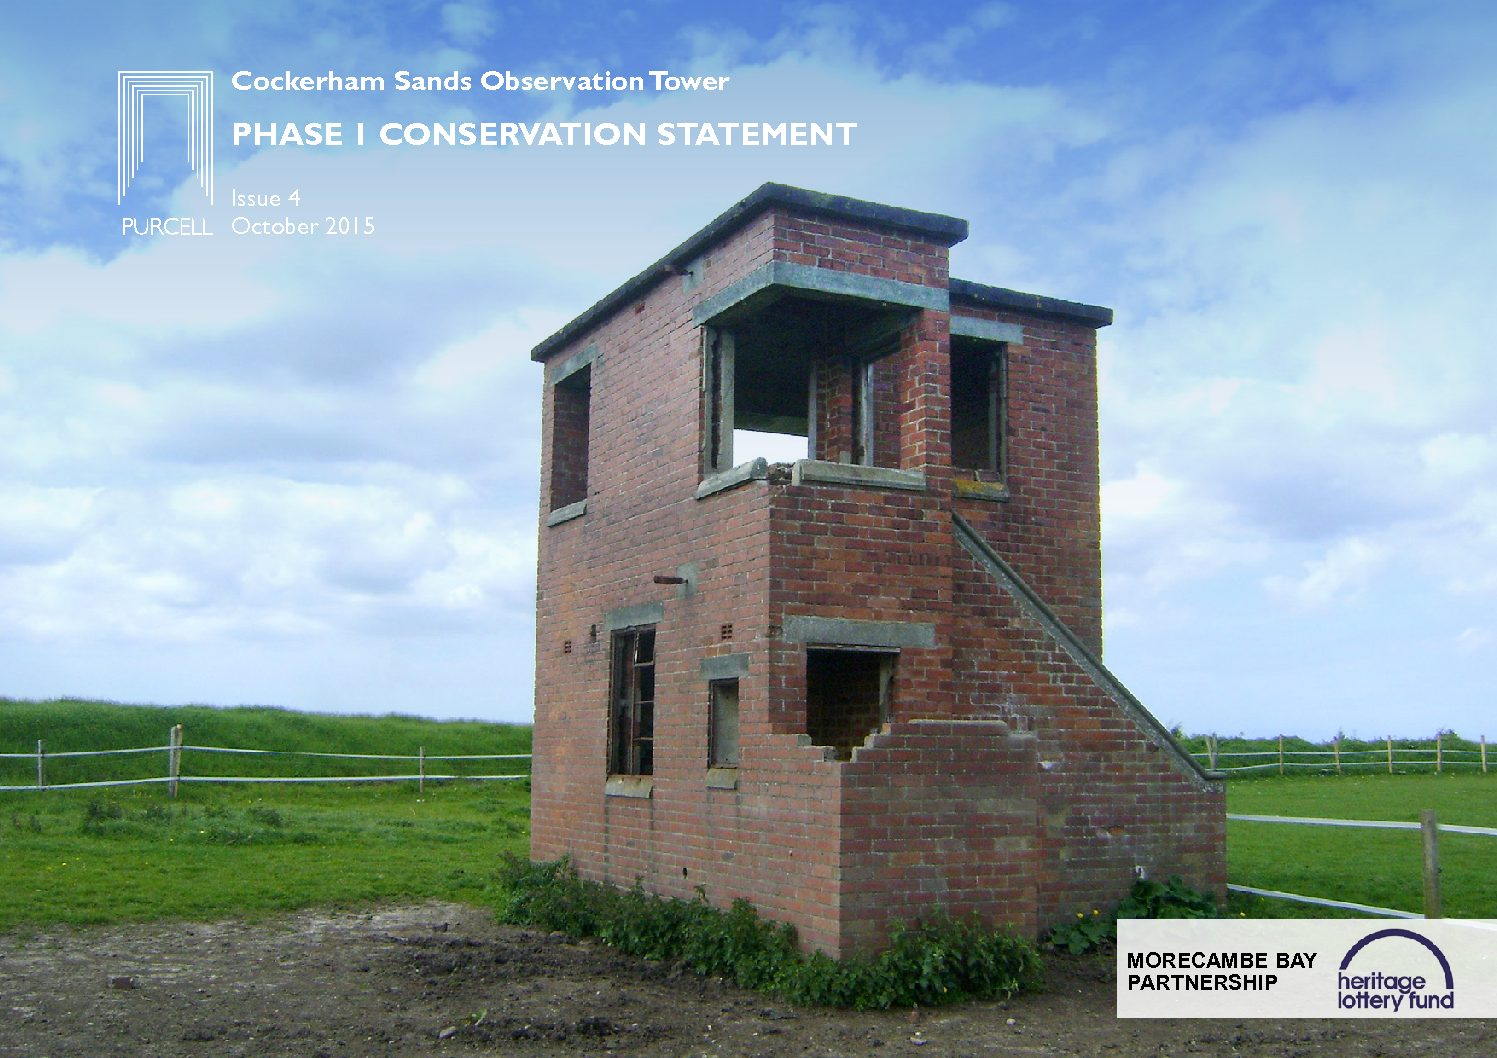 Cockerham Sands Observation Tower Phase 1 Conservation Statement